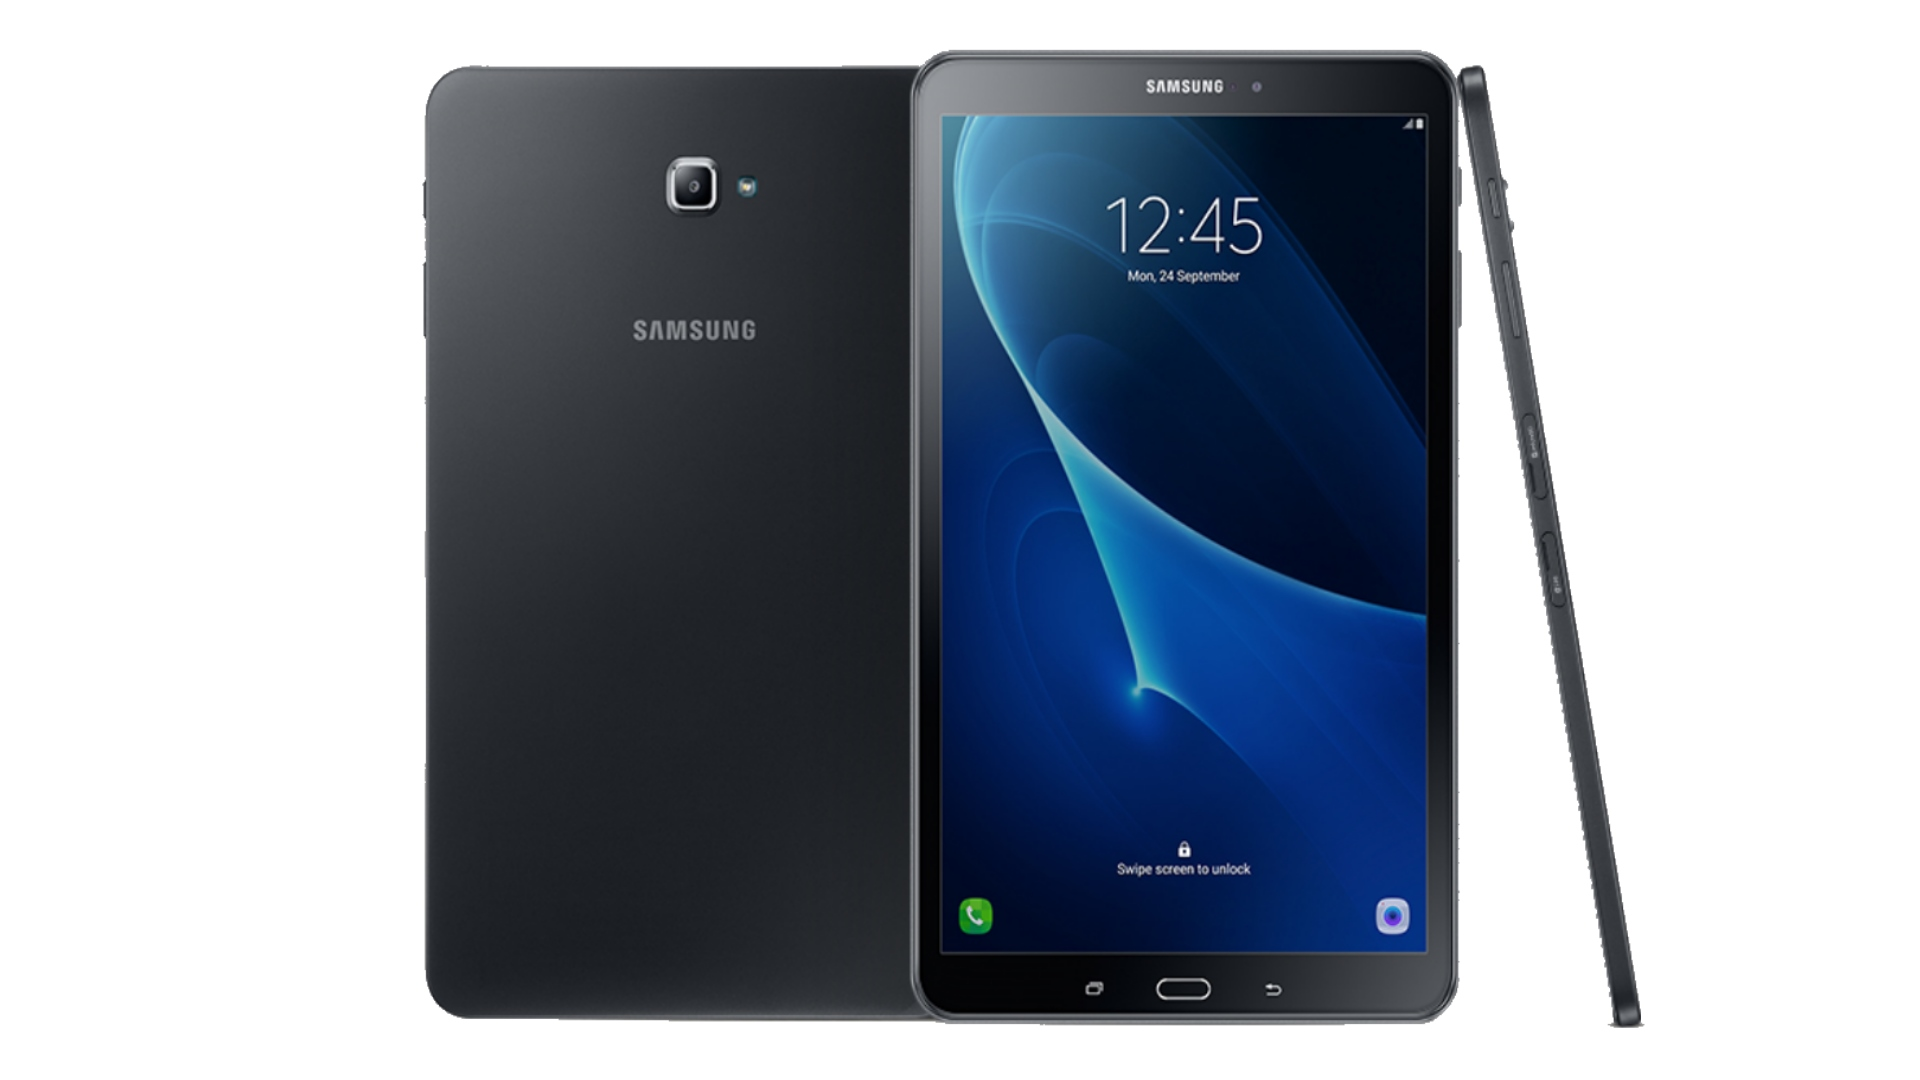 The best Samsung Galaxy Tab deals on Amazon Prime Day 2018 1531414746_402_the-best-samsung-galaxy-tab-deals-on-amazon-prime-day-2018